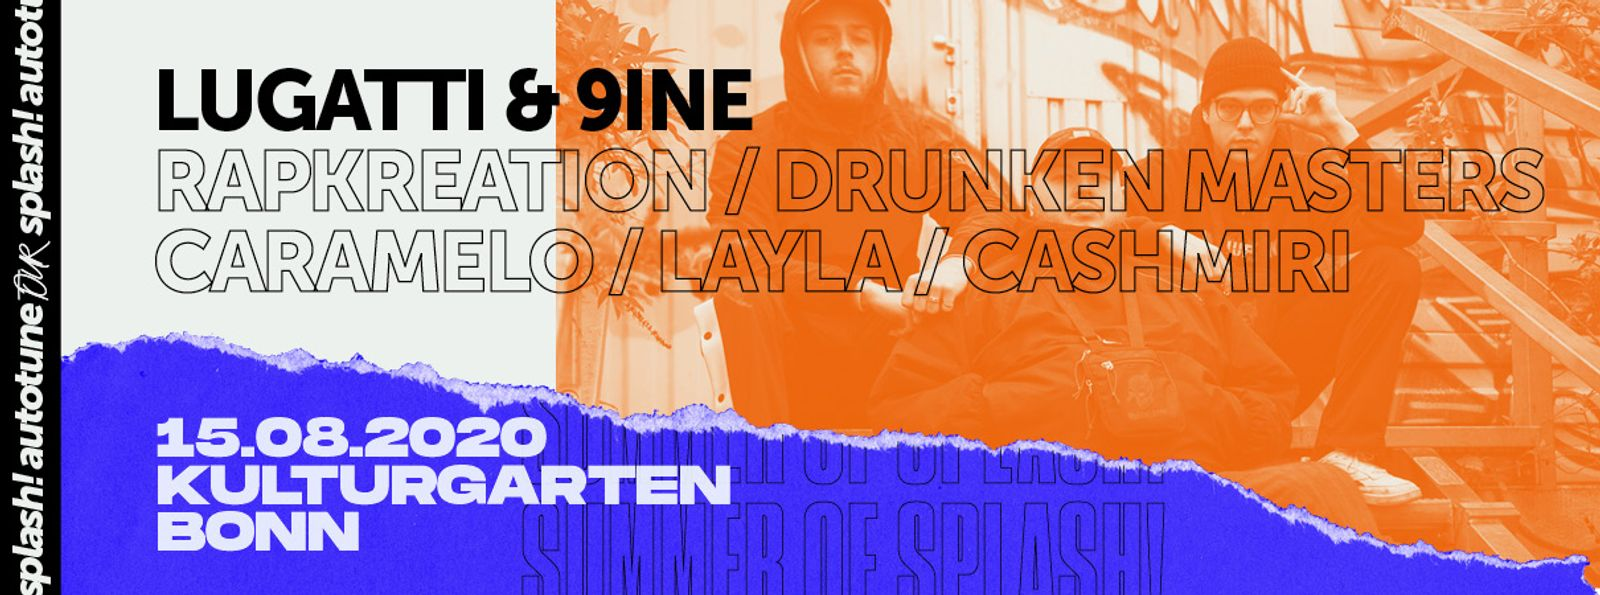 Summer of splash! - Autotune Tour | BonnLive Kulturgarten